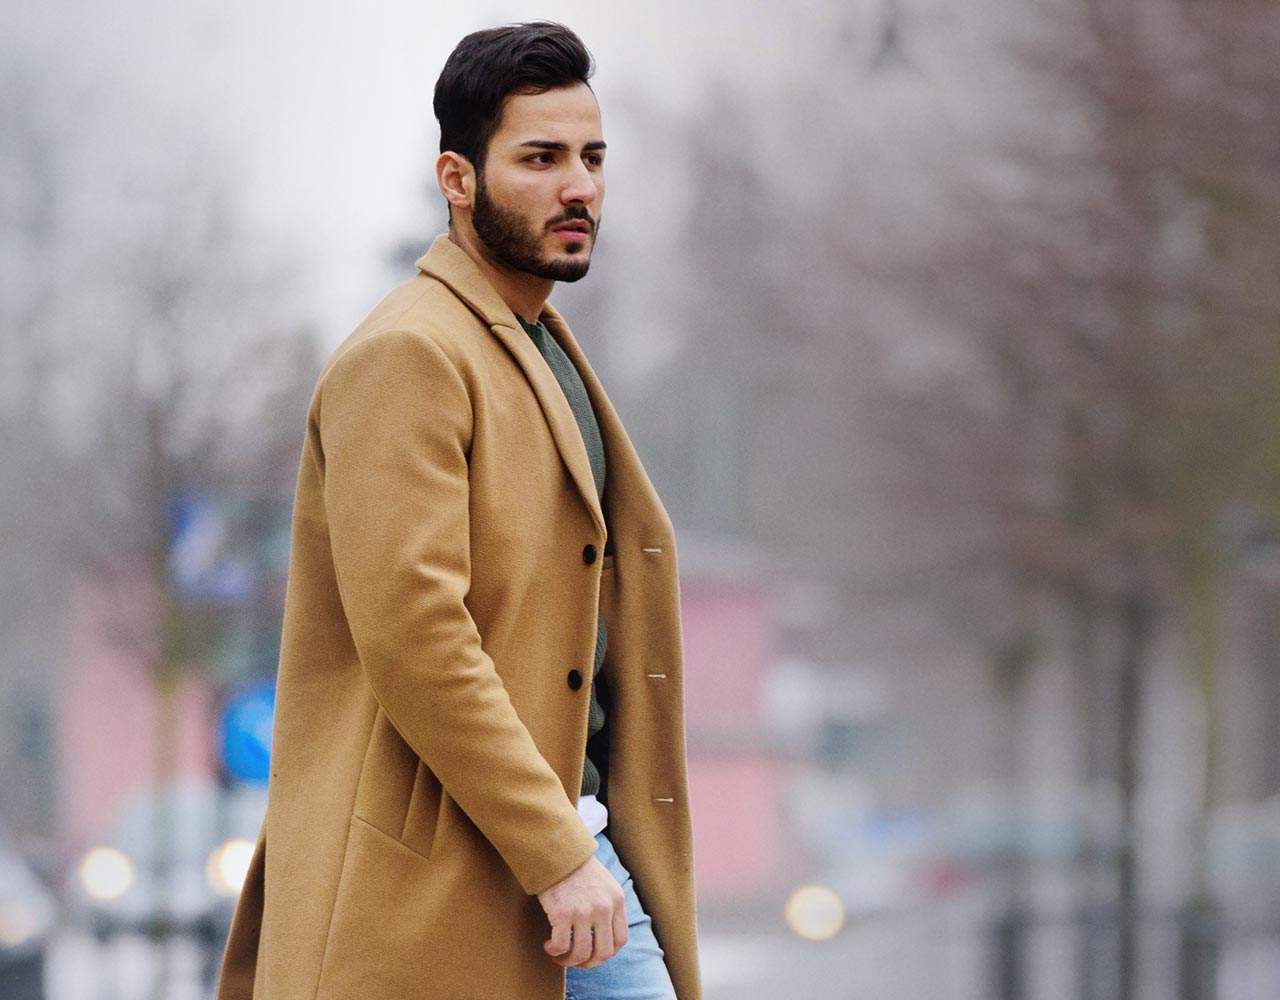 Man in a coat walking in the street